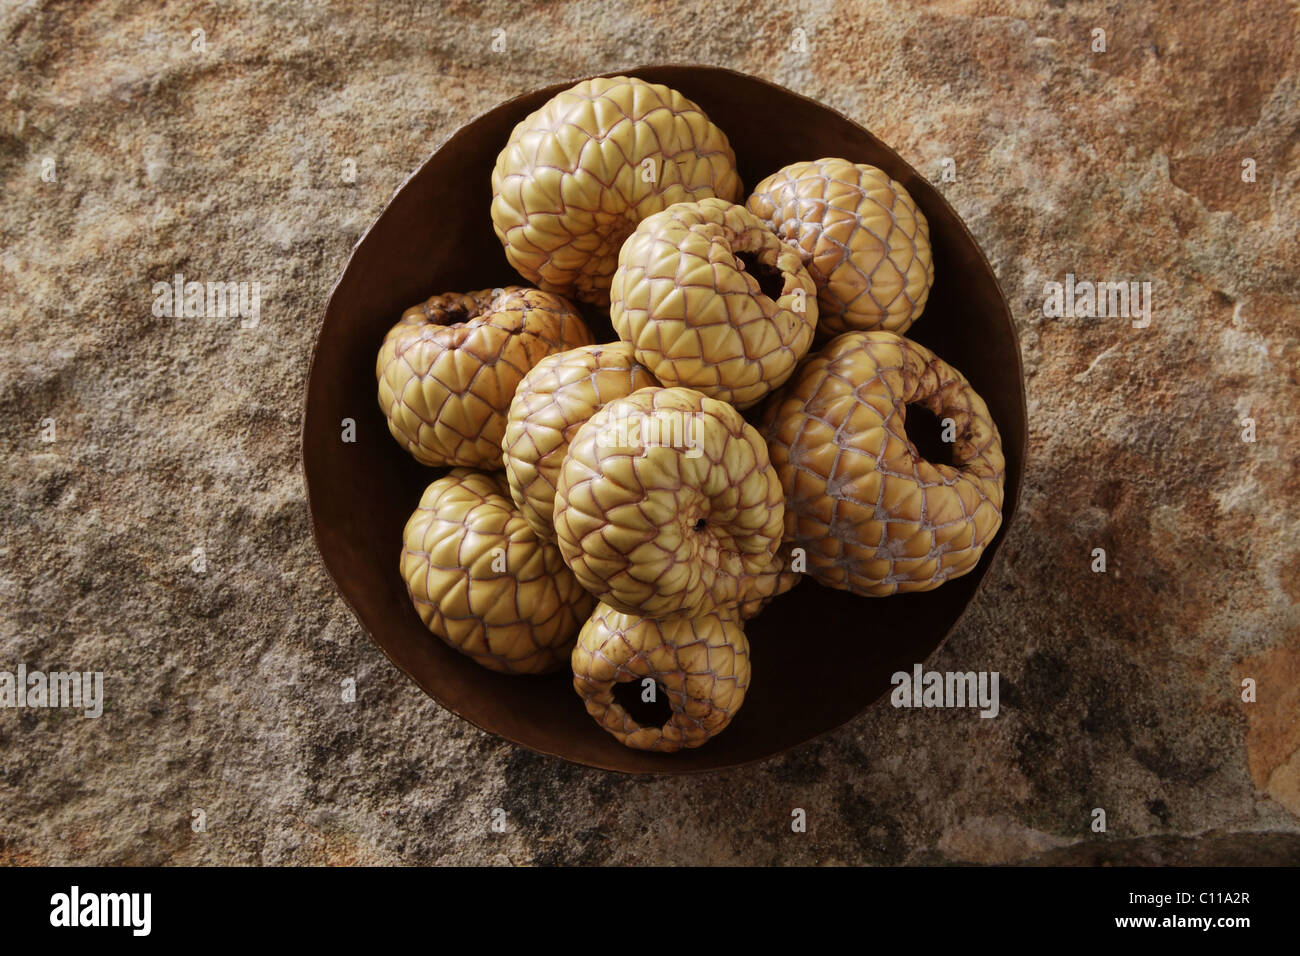 Salak (Salacca zalacca), fruit, in a copper bowl on a stone surface - Stock Image